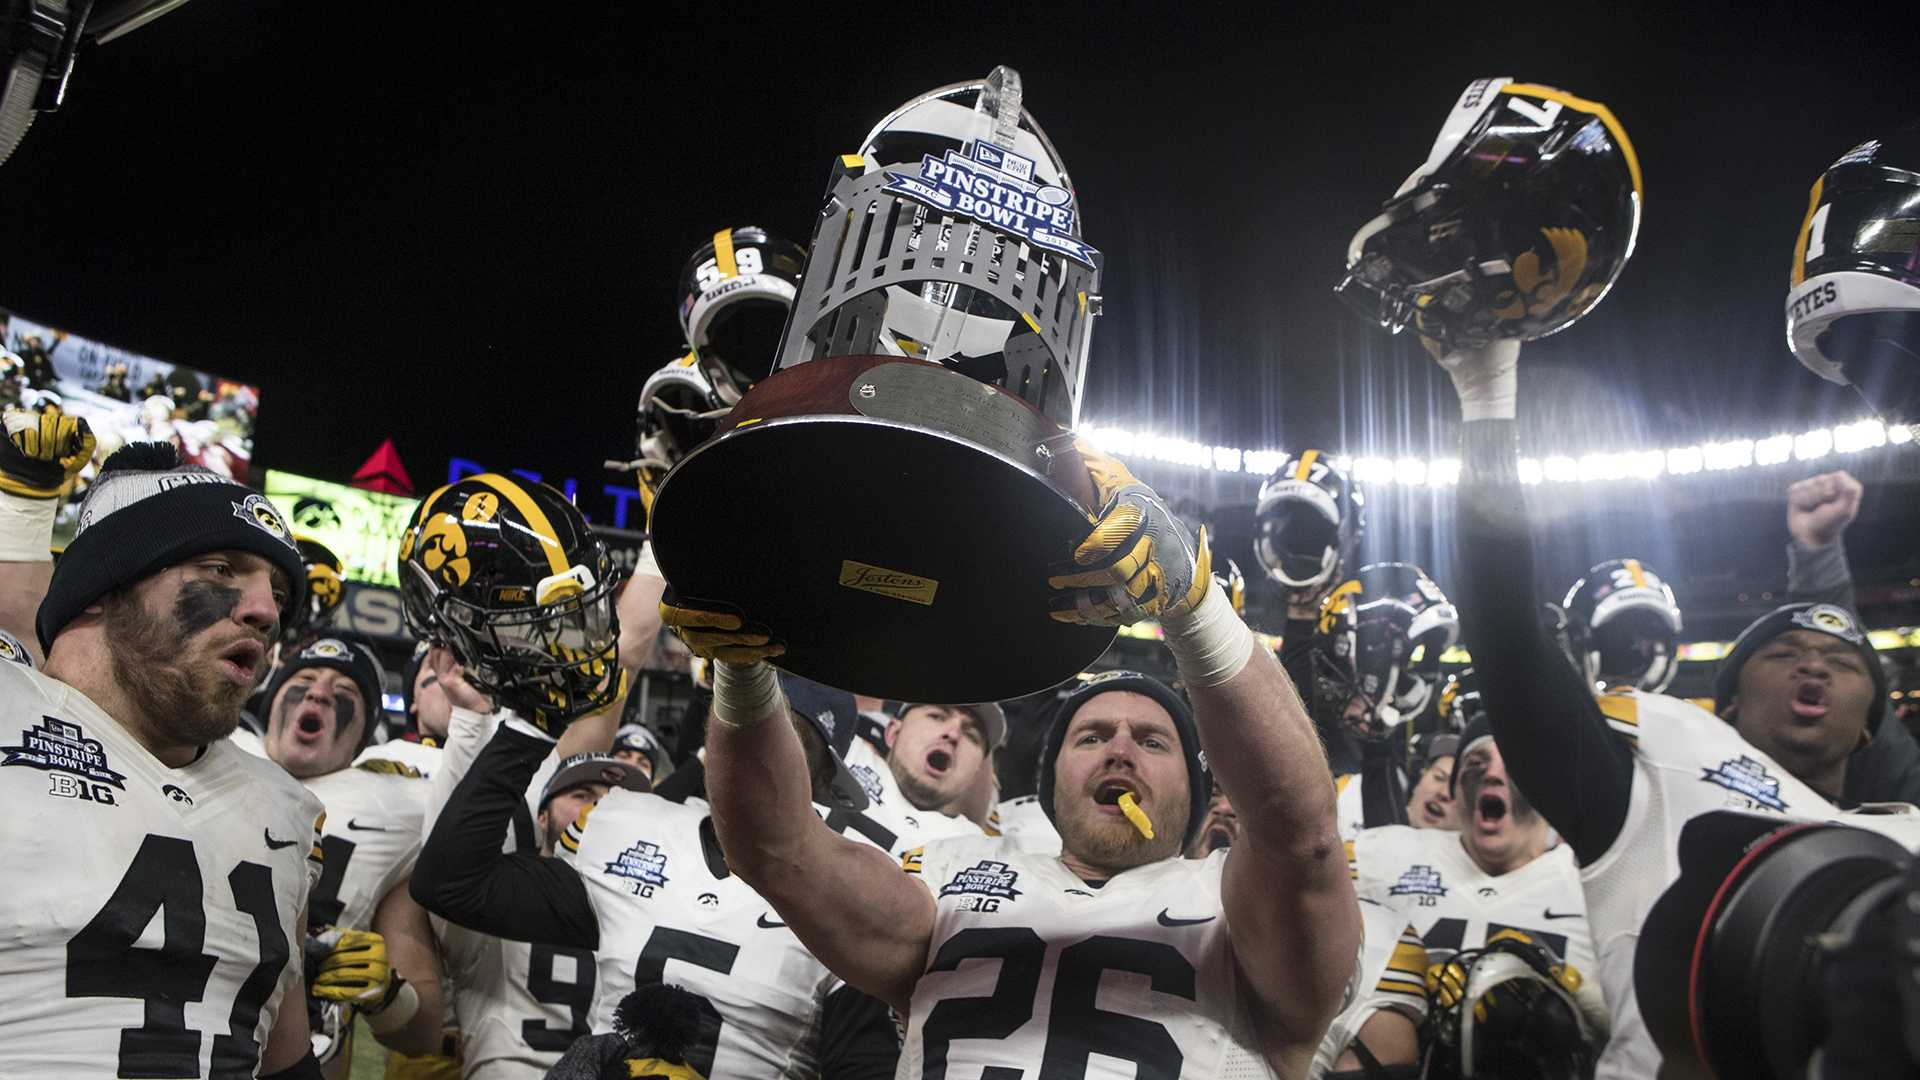 Iowa's Kevin Ward (26) holds up the New Era Pinstripe Bowl trophy after the Hawkeyes beat Boston College in the Pinstripe Bowl at Yankee Stadium in New York on Wednesday, Dec. 27. The Hawkeyes went on to win 27-20. (Ben Allan Smith/The Daily Iowan)